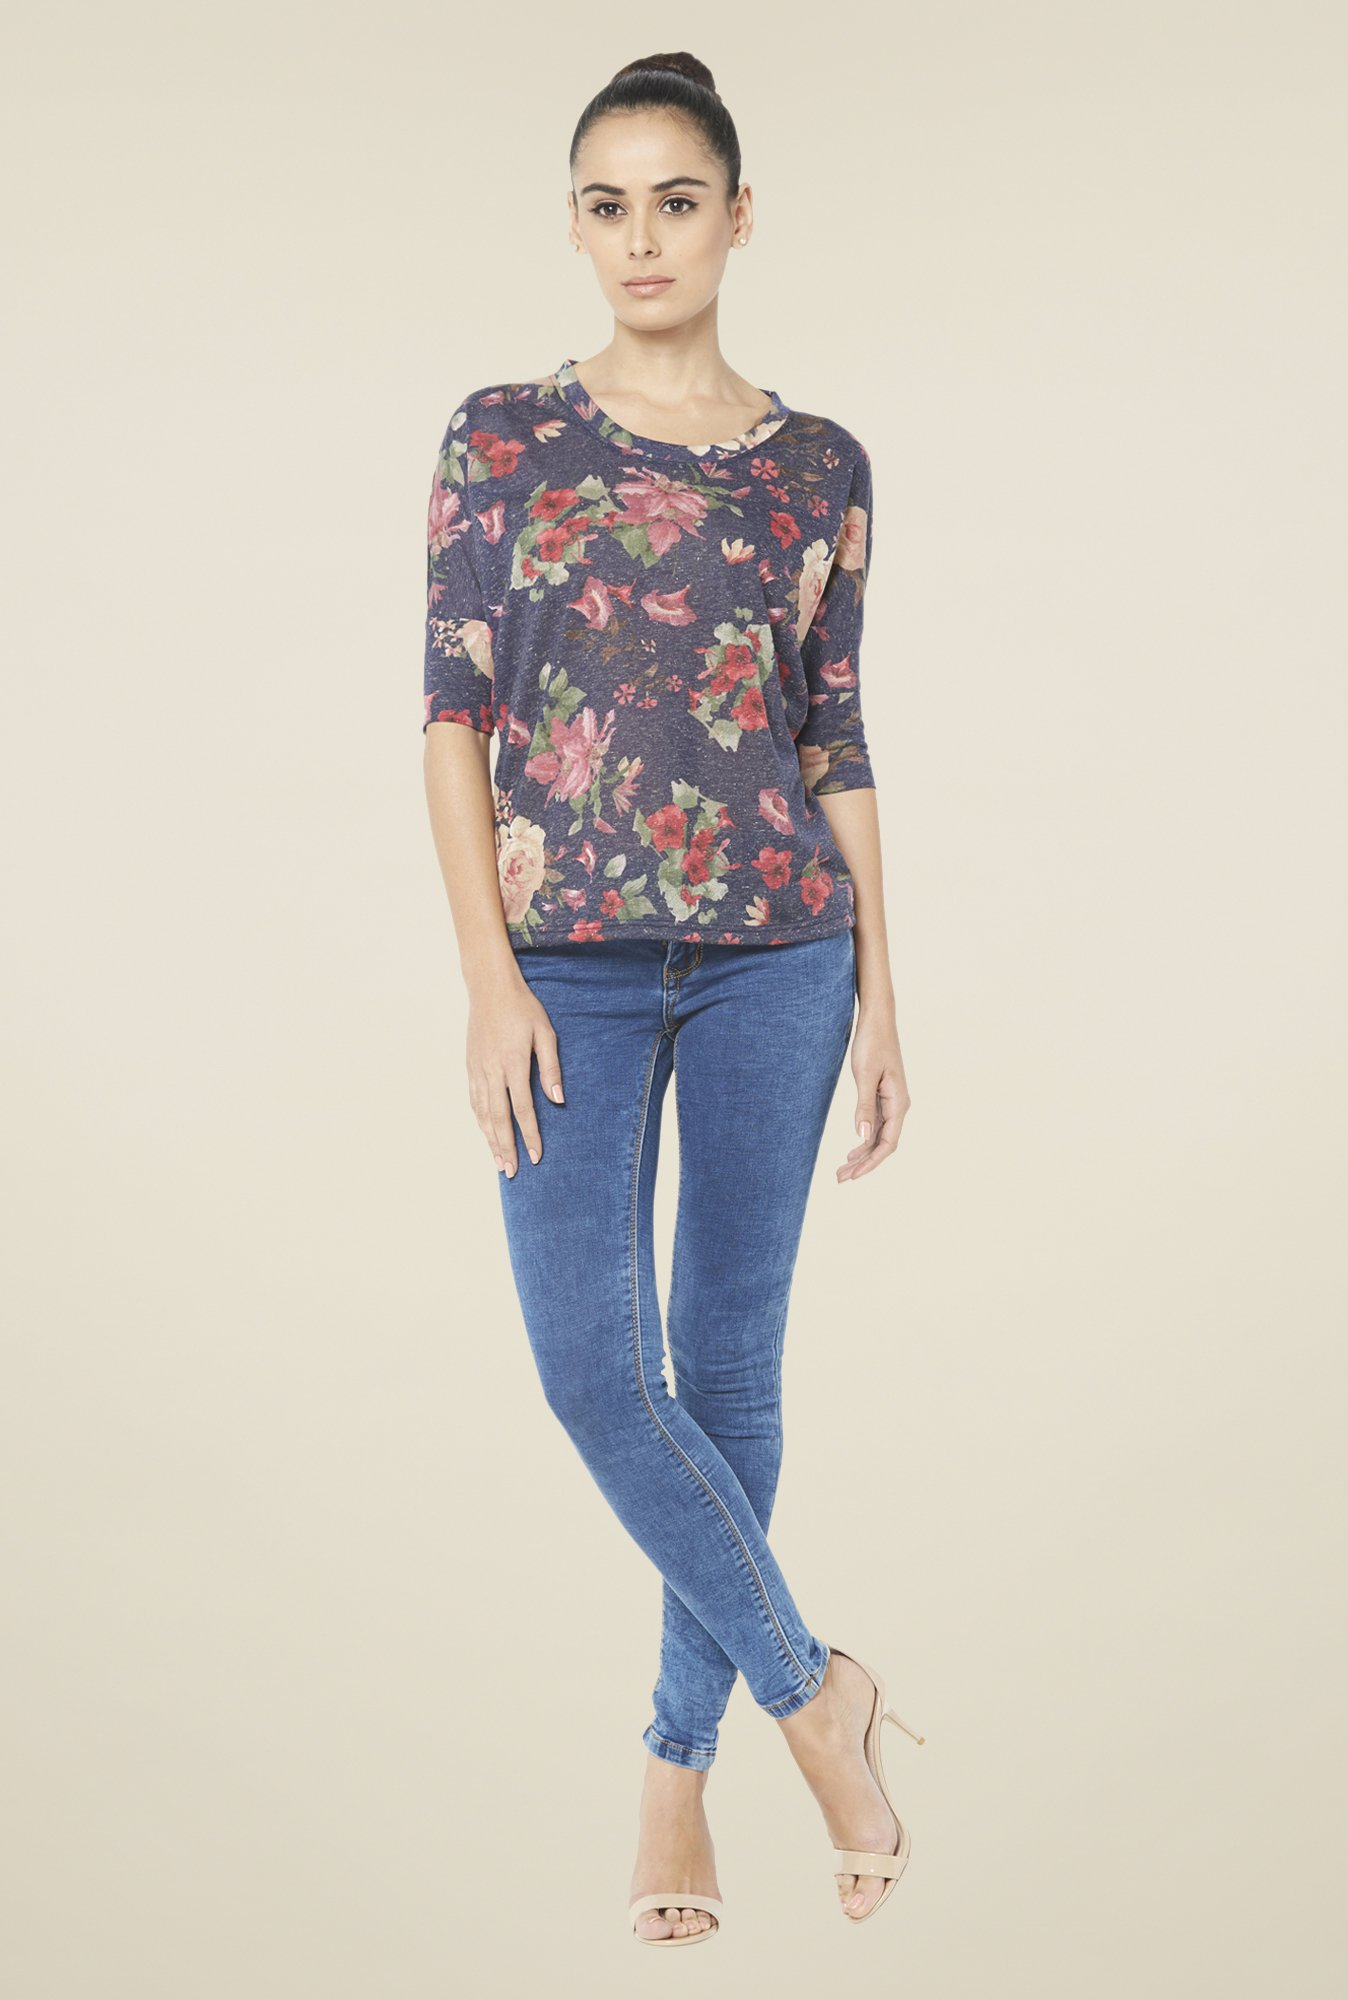 Globus Navy Floral Printed Round Neck Top